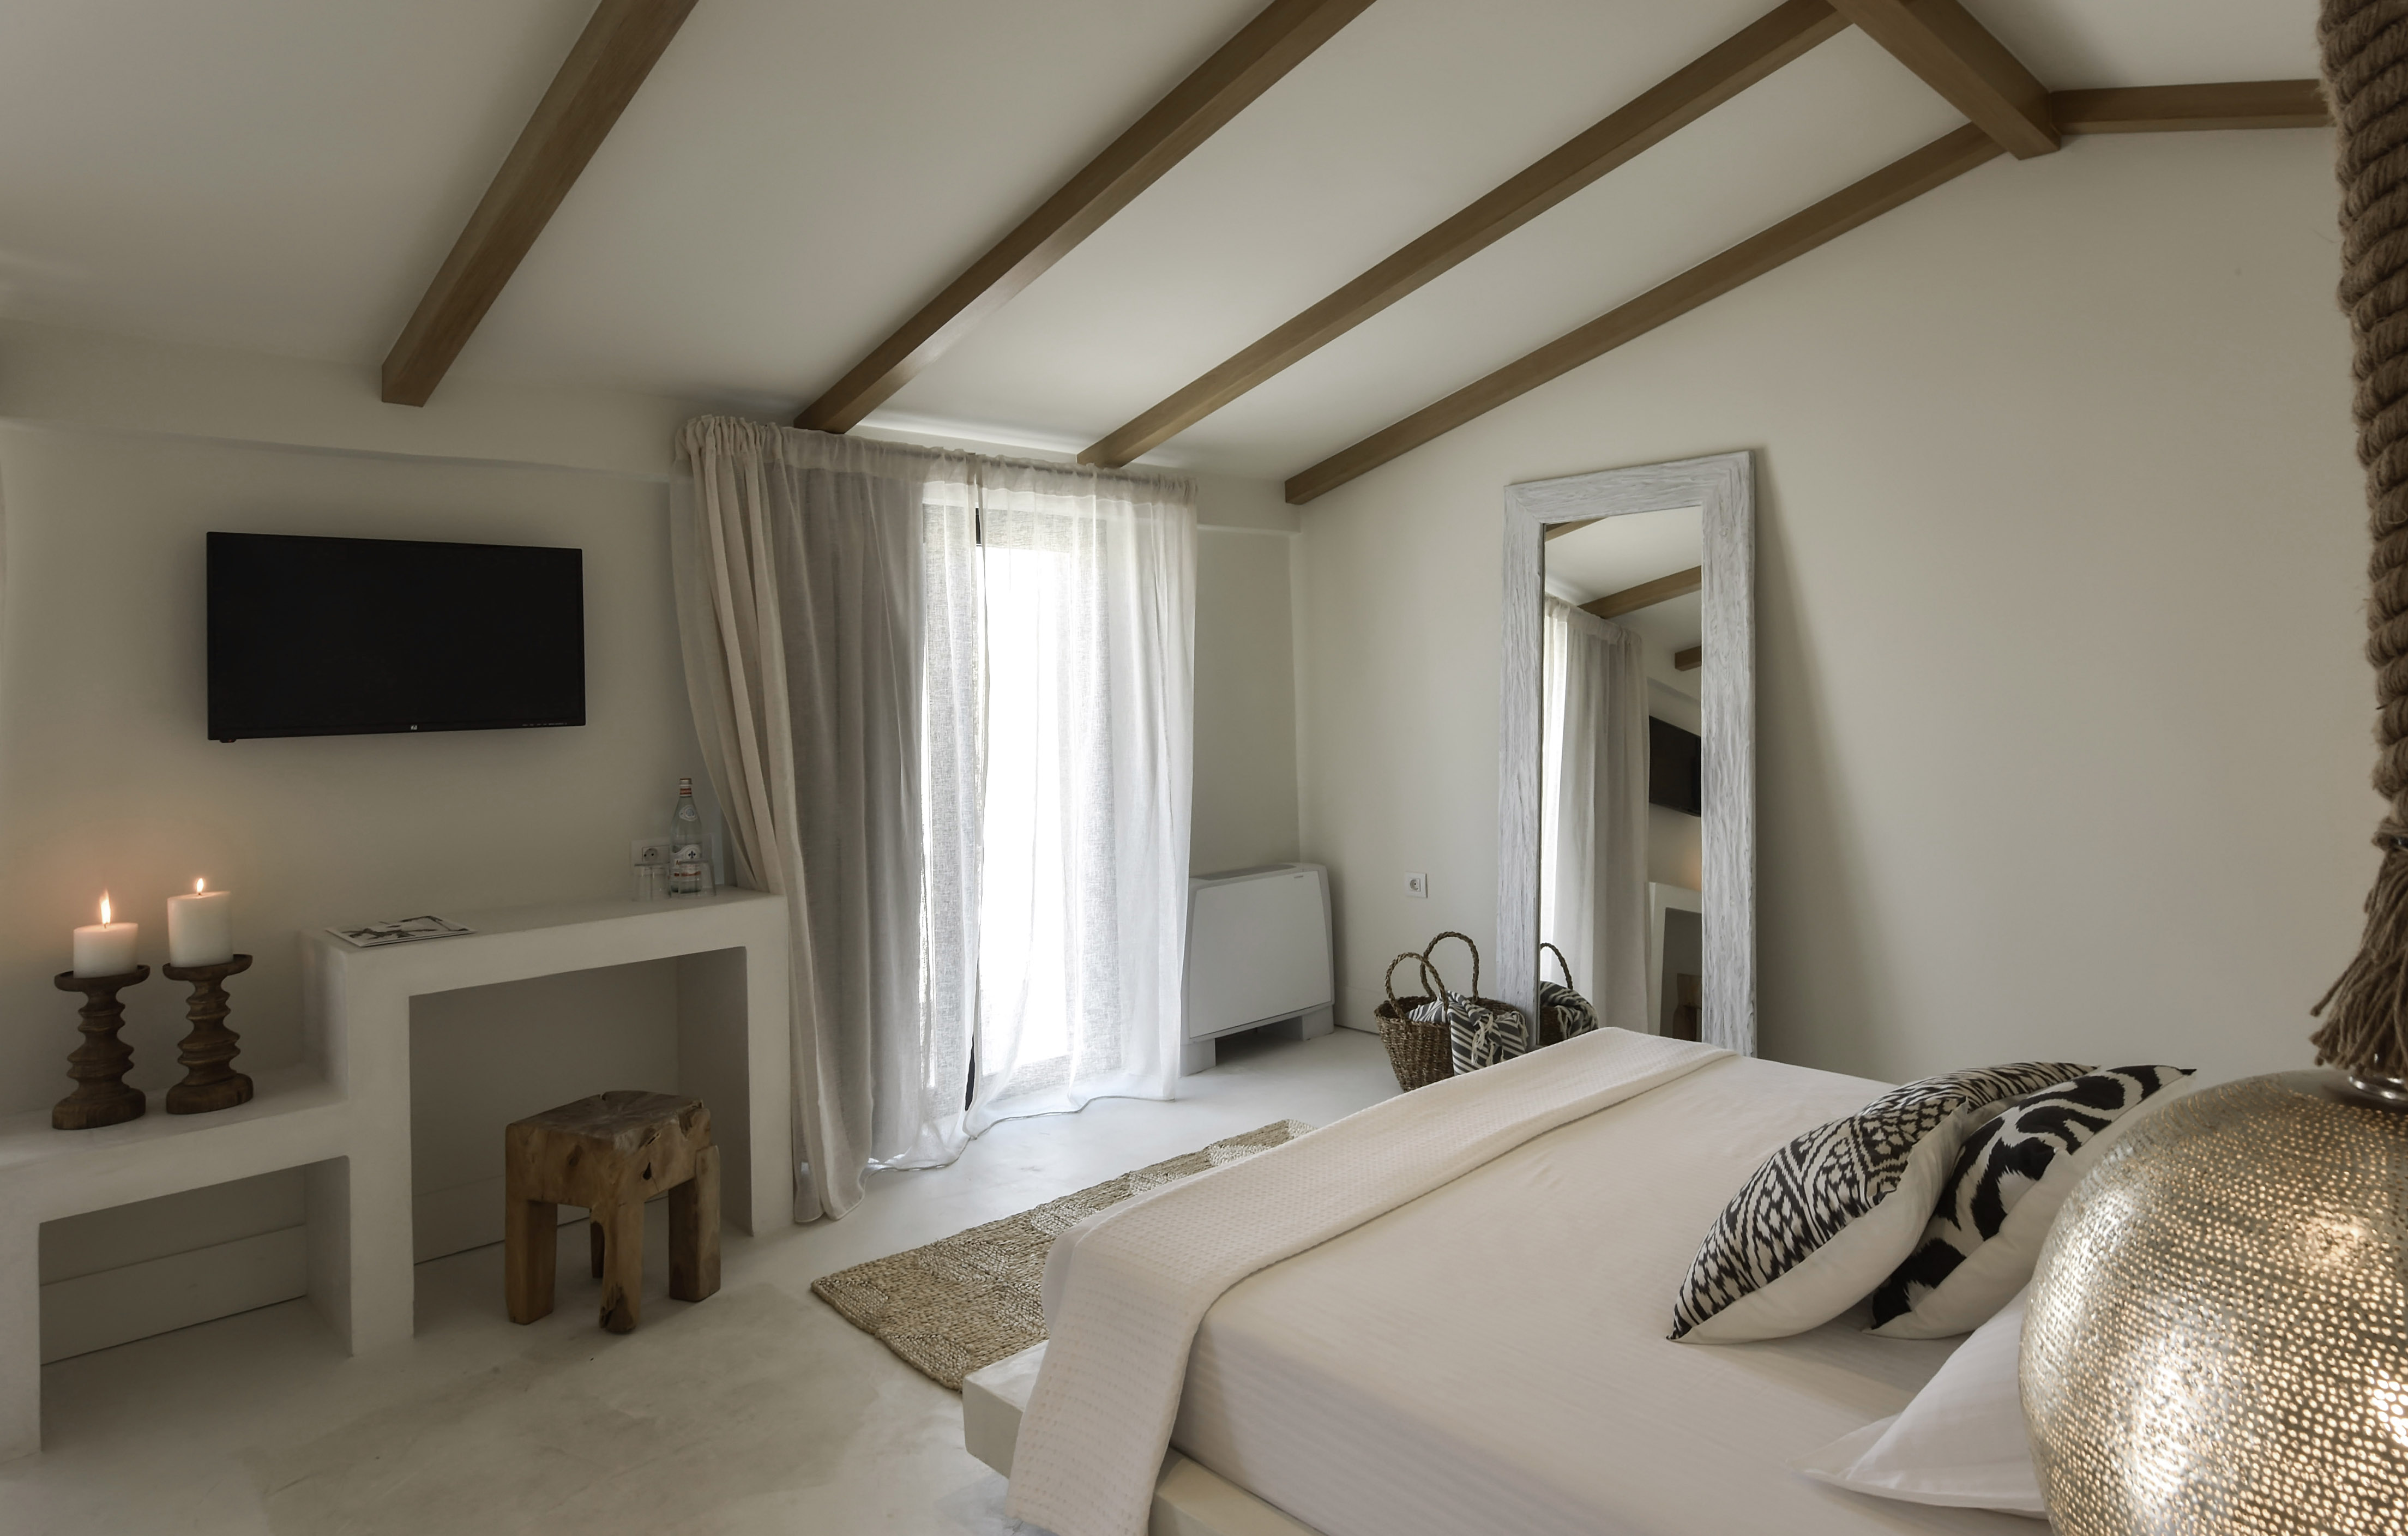 Deluxe Suite kefalonia accommodation